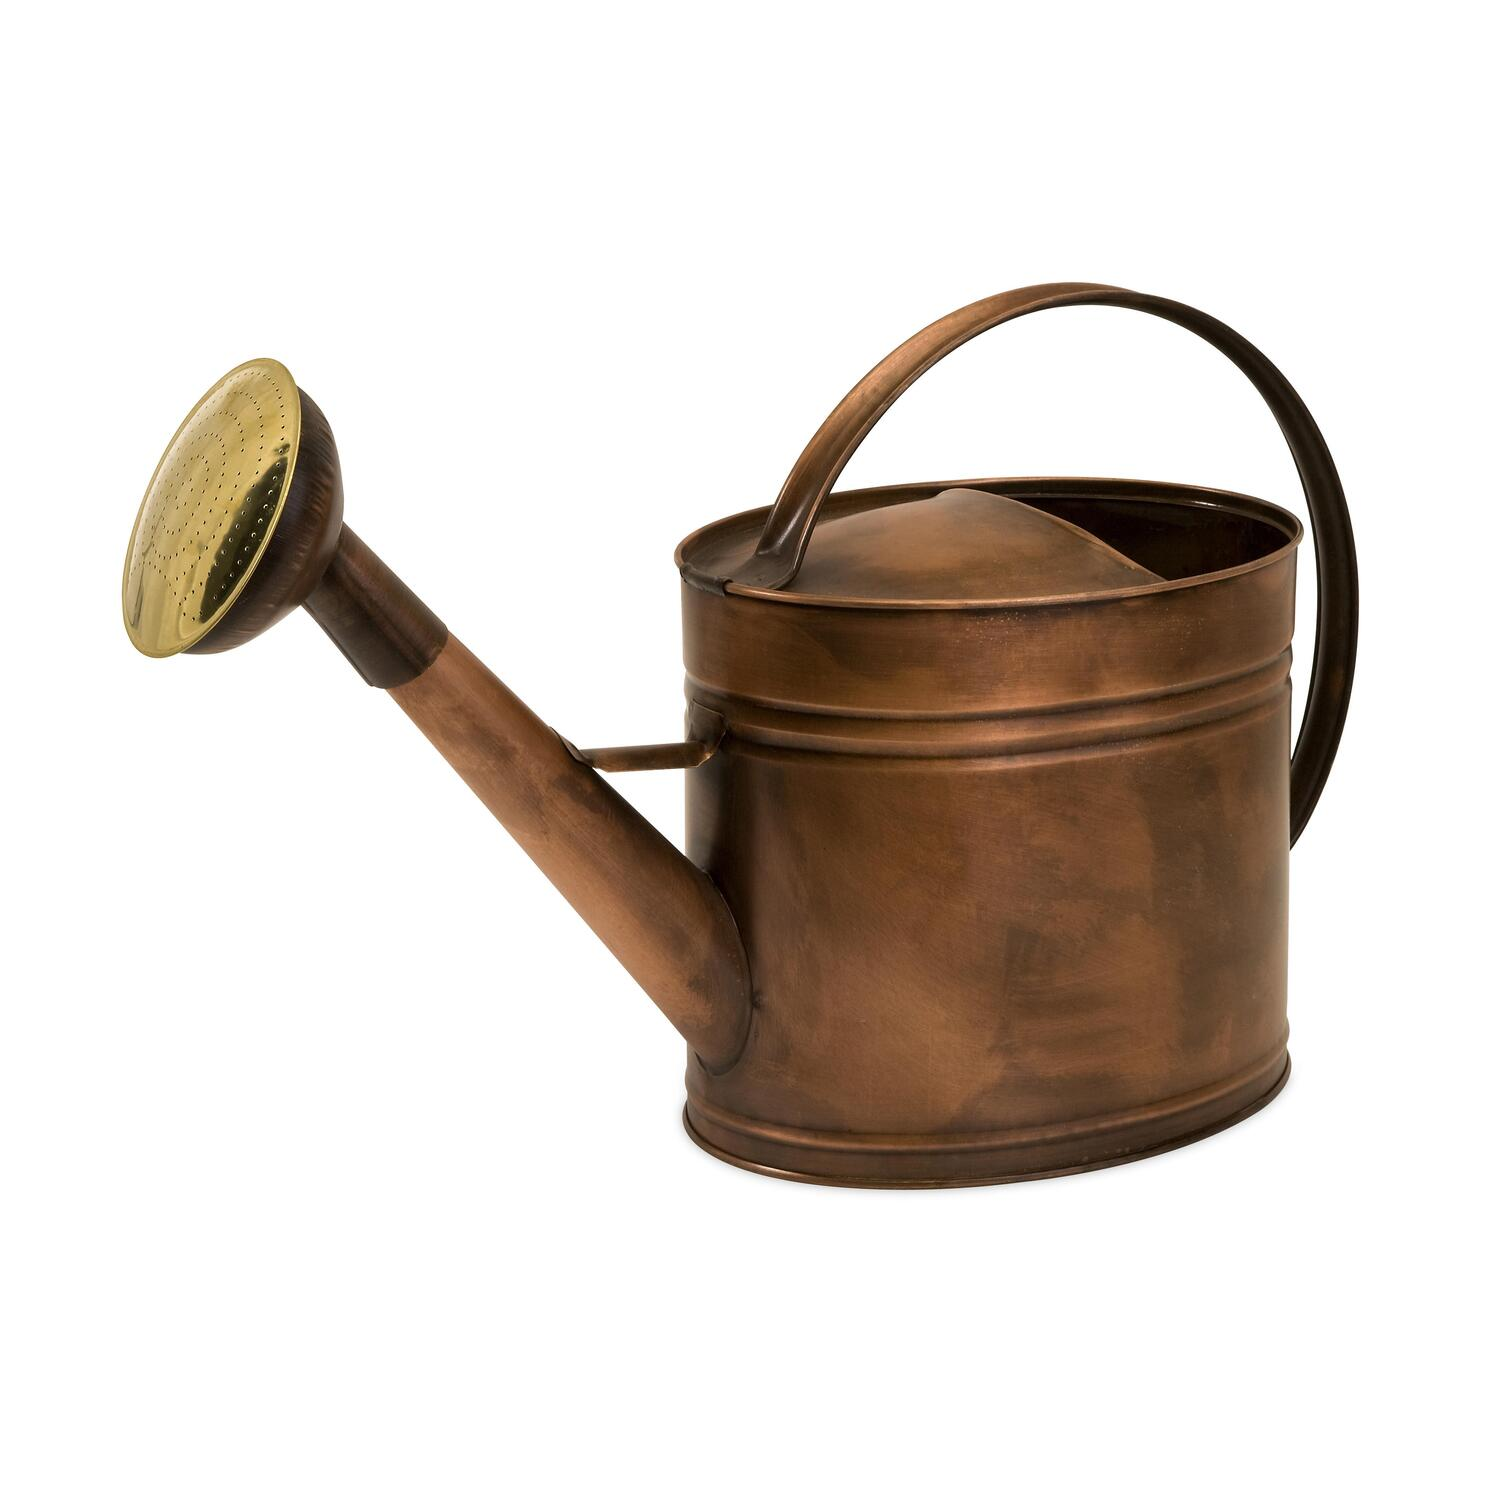 Decorations For Home Tauba Large Oval Copper Watering Can 113 99 Ojcommerce